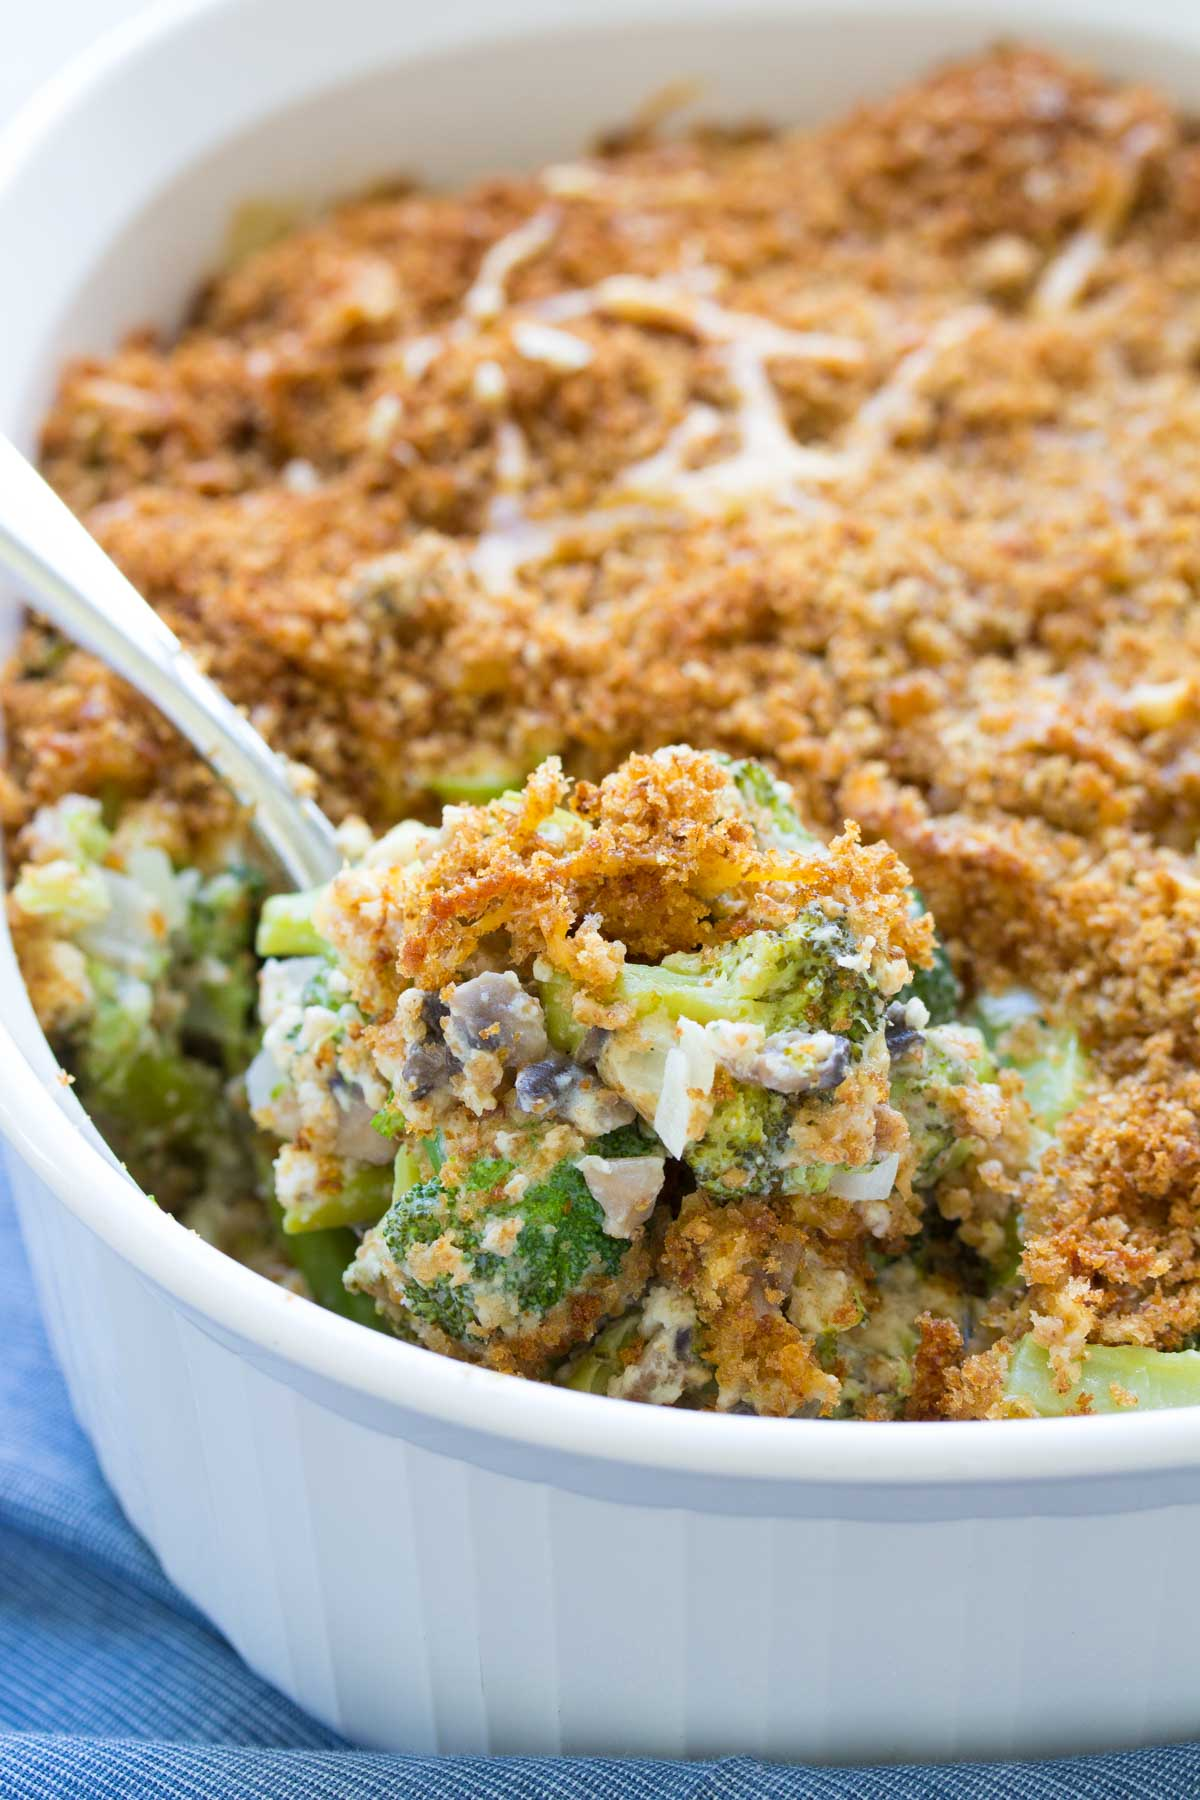 This delicious broccoli casserole from scratch is filled with fresh broccoli, mushrooms, cheddar cheese, and a homemade cream sauce. A buttery, cheesy breadcrumb topping adds a crispy finishing touch to this classic dish. This healthier broccoli casserole is made without mayonnaise.